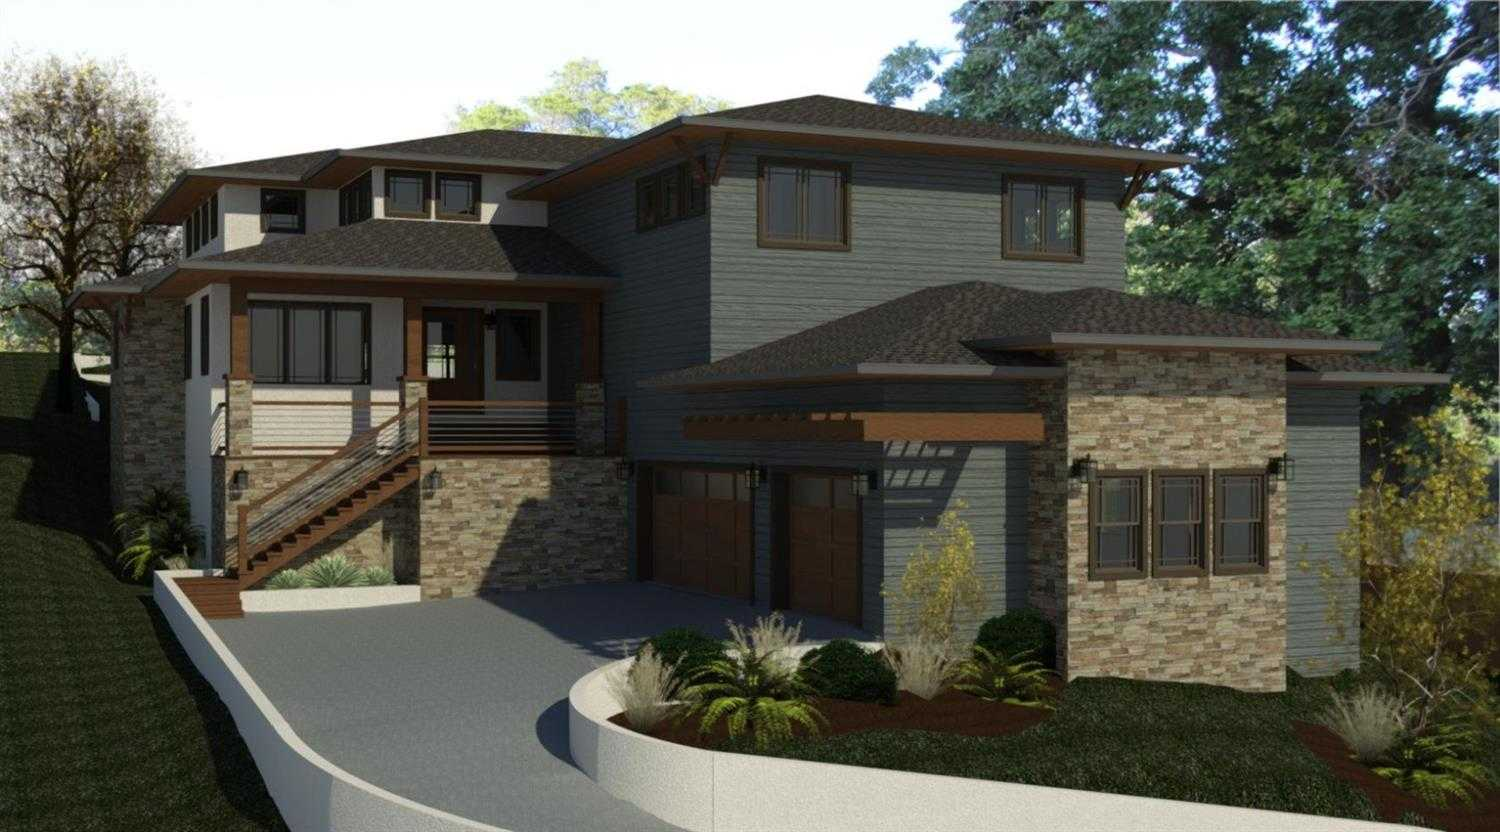 $1,199,000 - 4Br/5Ba -  for Sale in American River Canyon North, Folsom